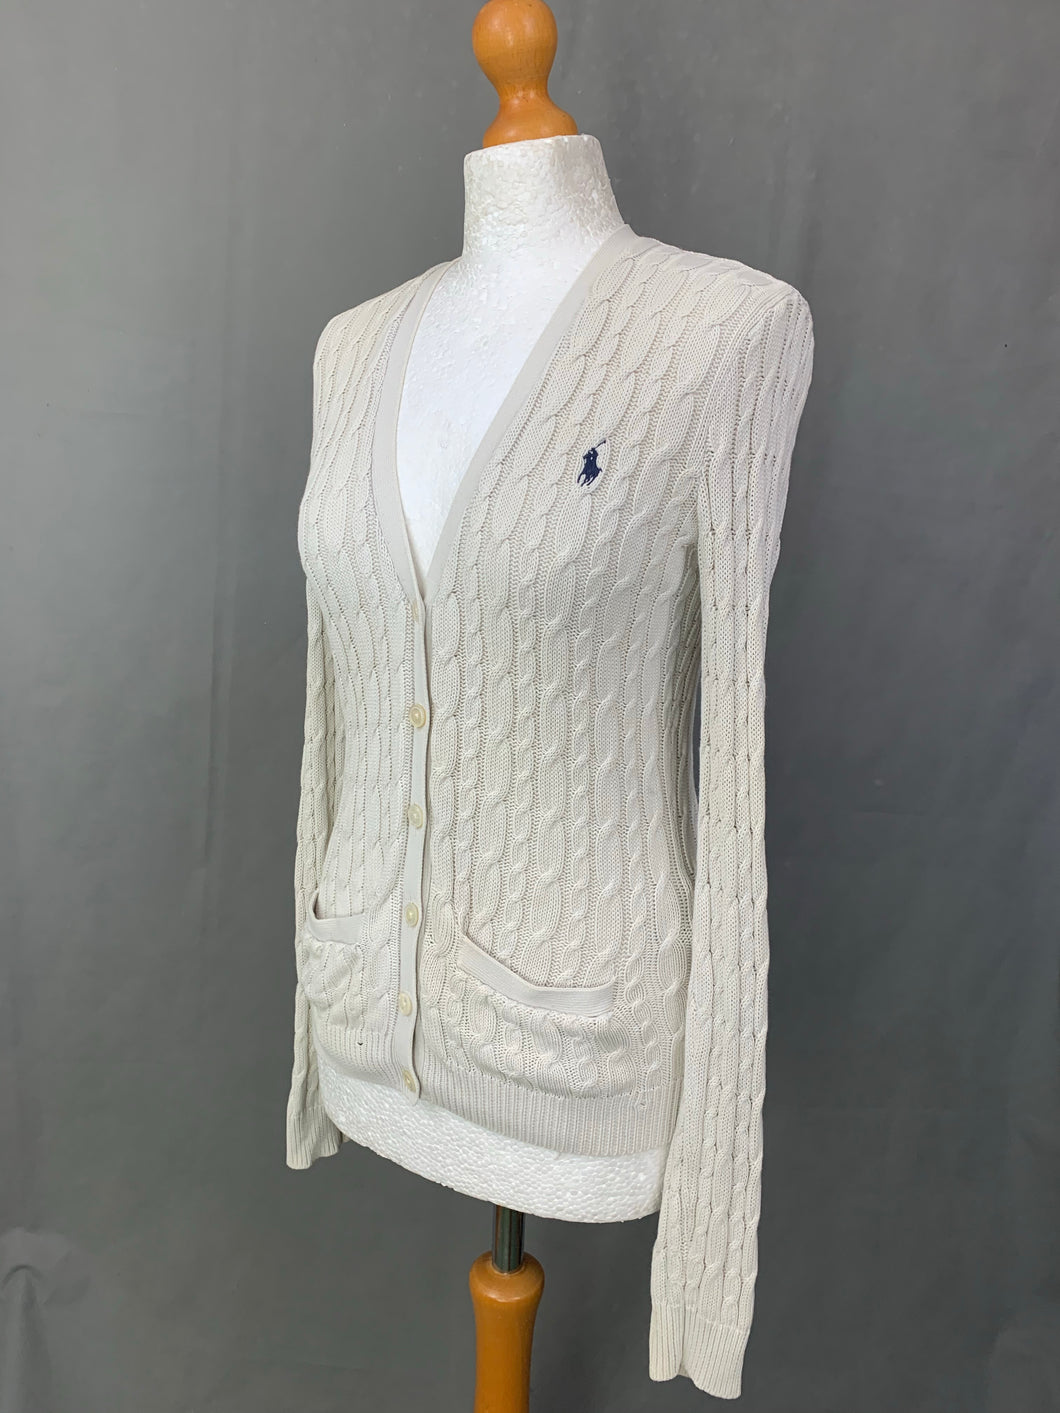 RALPH LAUREN Ladies Ivory Cable Knit CARDIGAN Size Small S